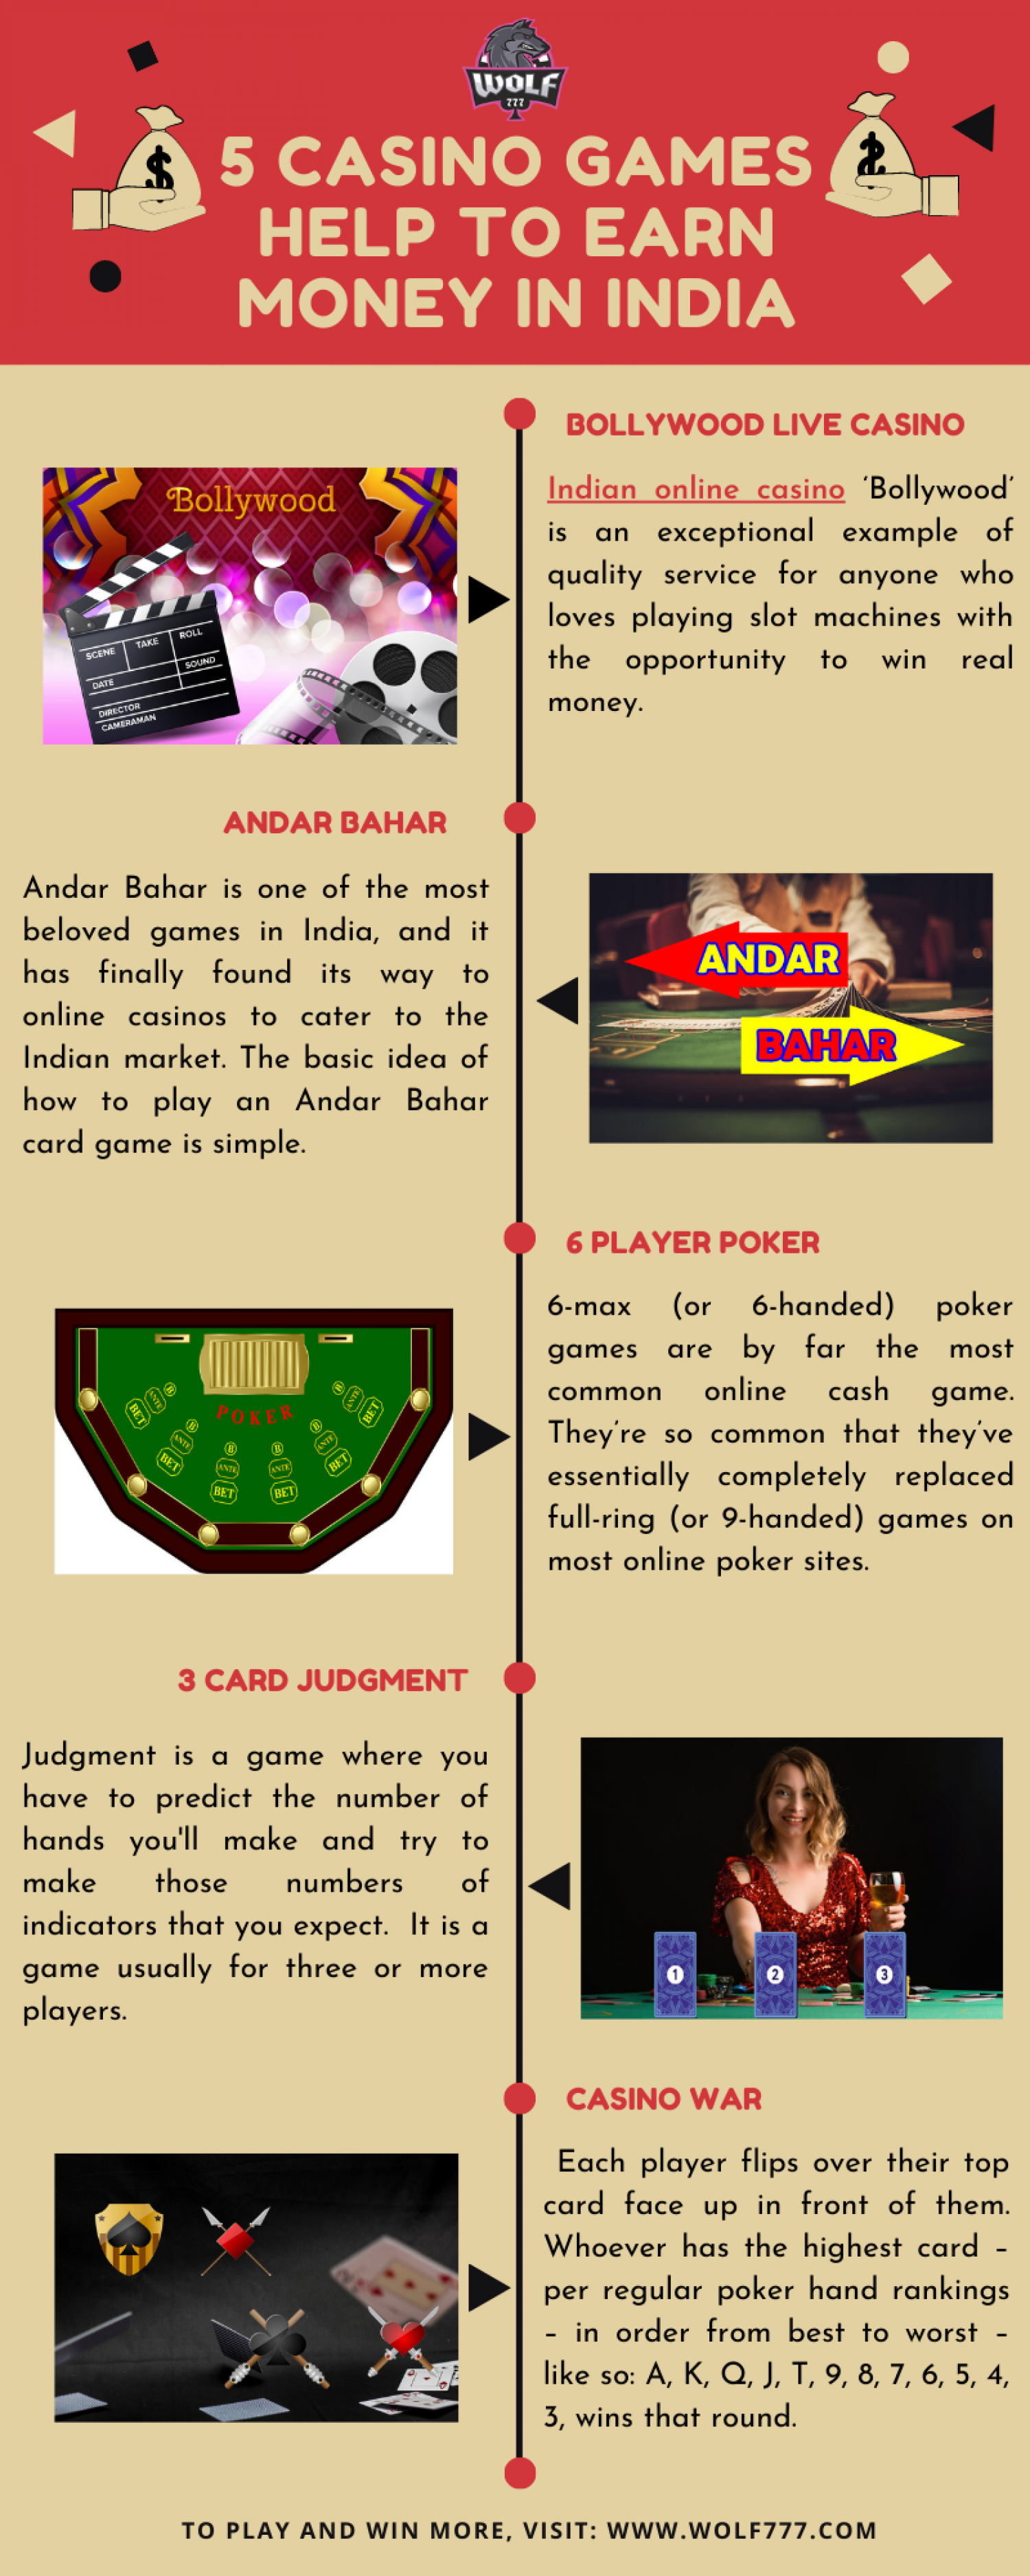 5 Casino Games Help to Earn Money in India Infographic